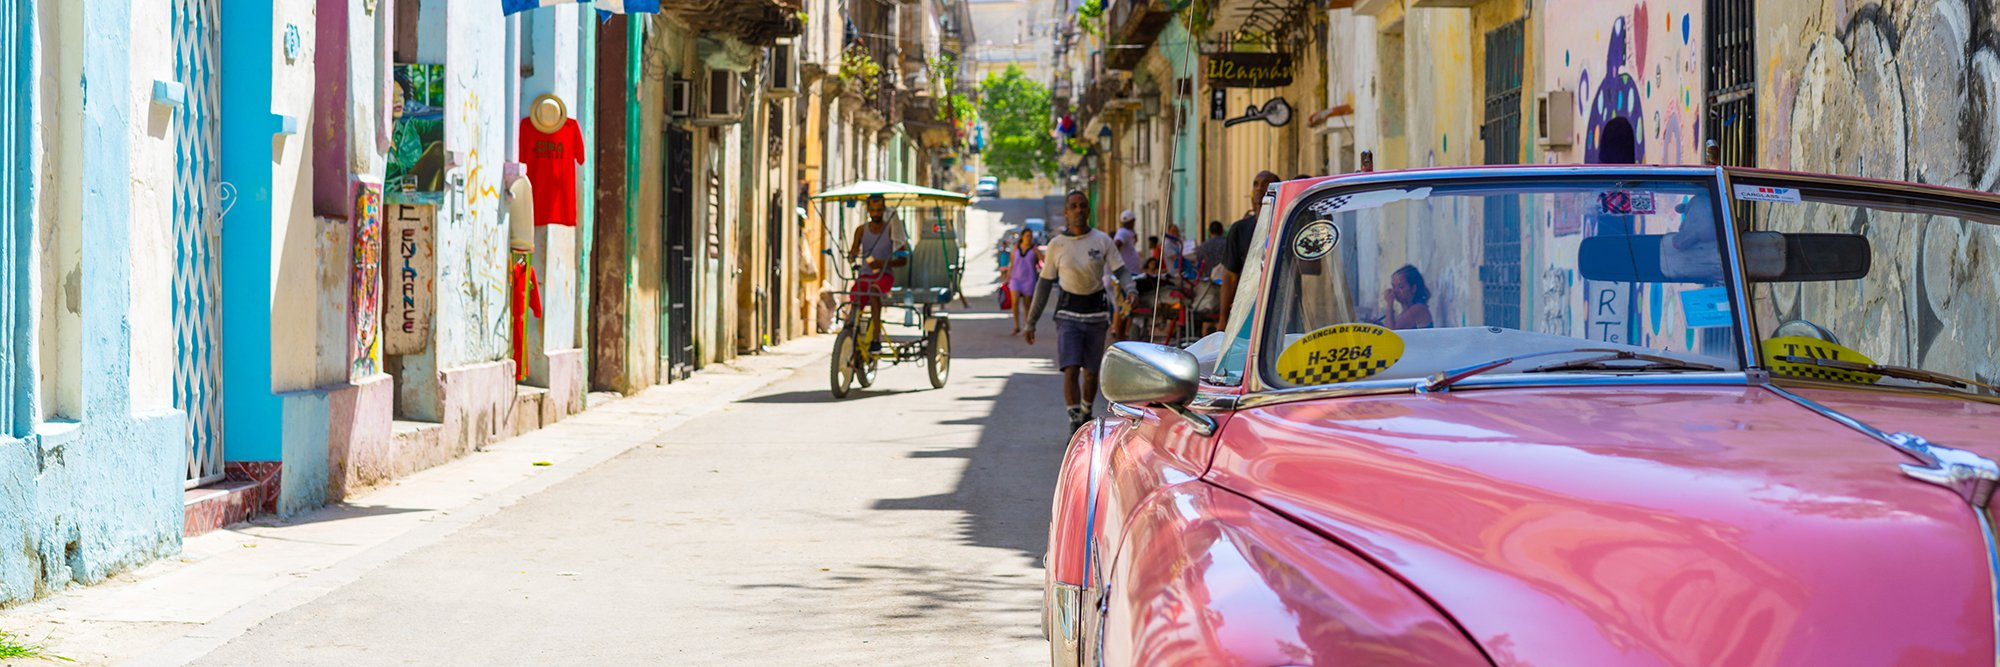 cuban street with vibrant colors